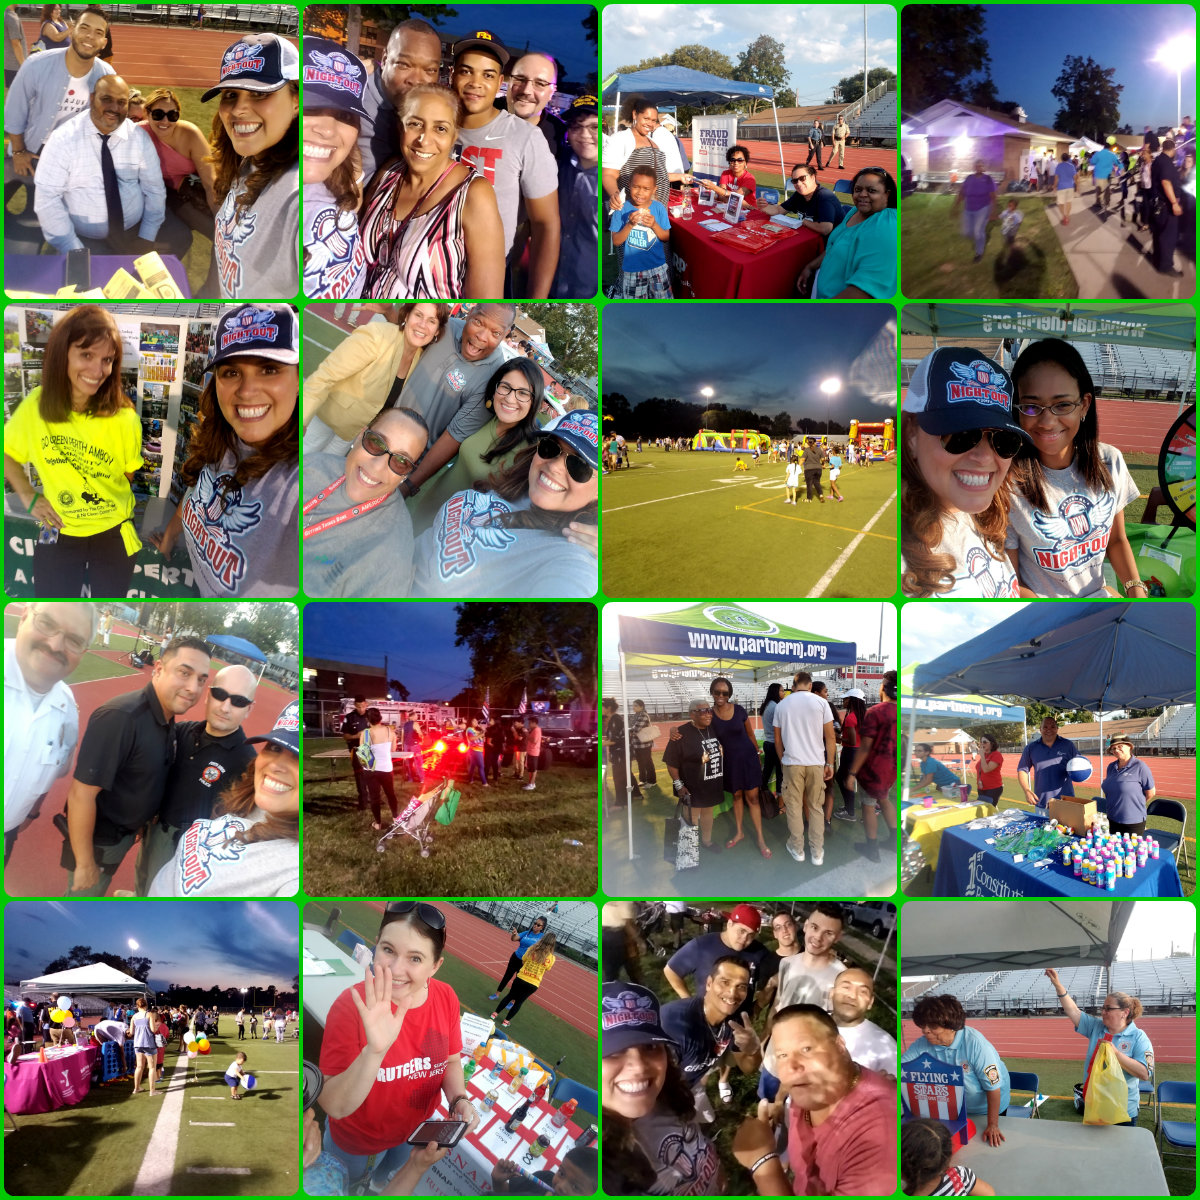 National Night Out August 2017